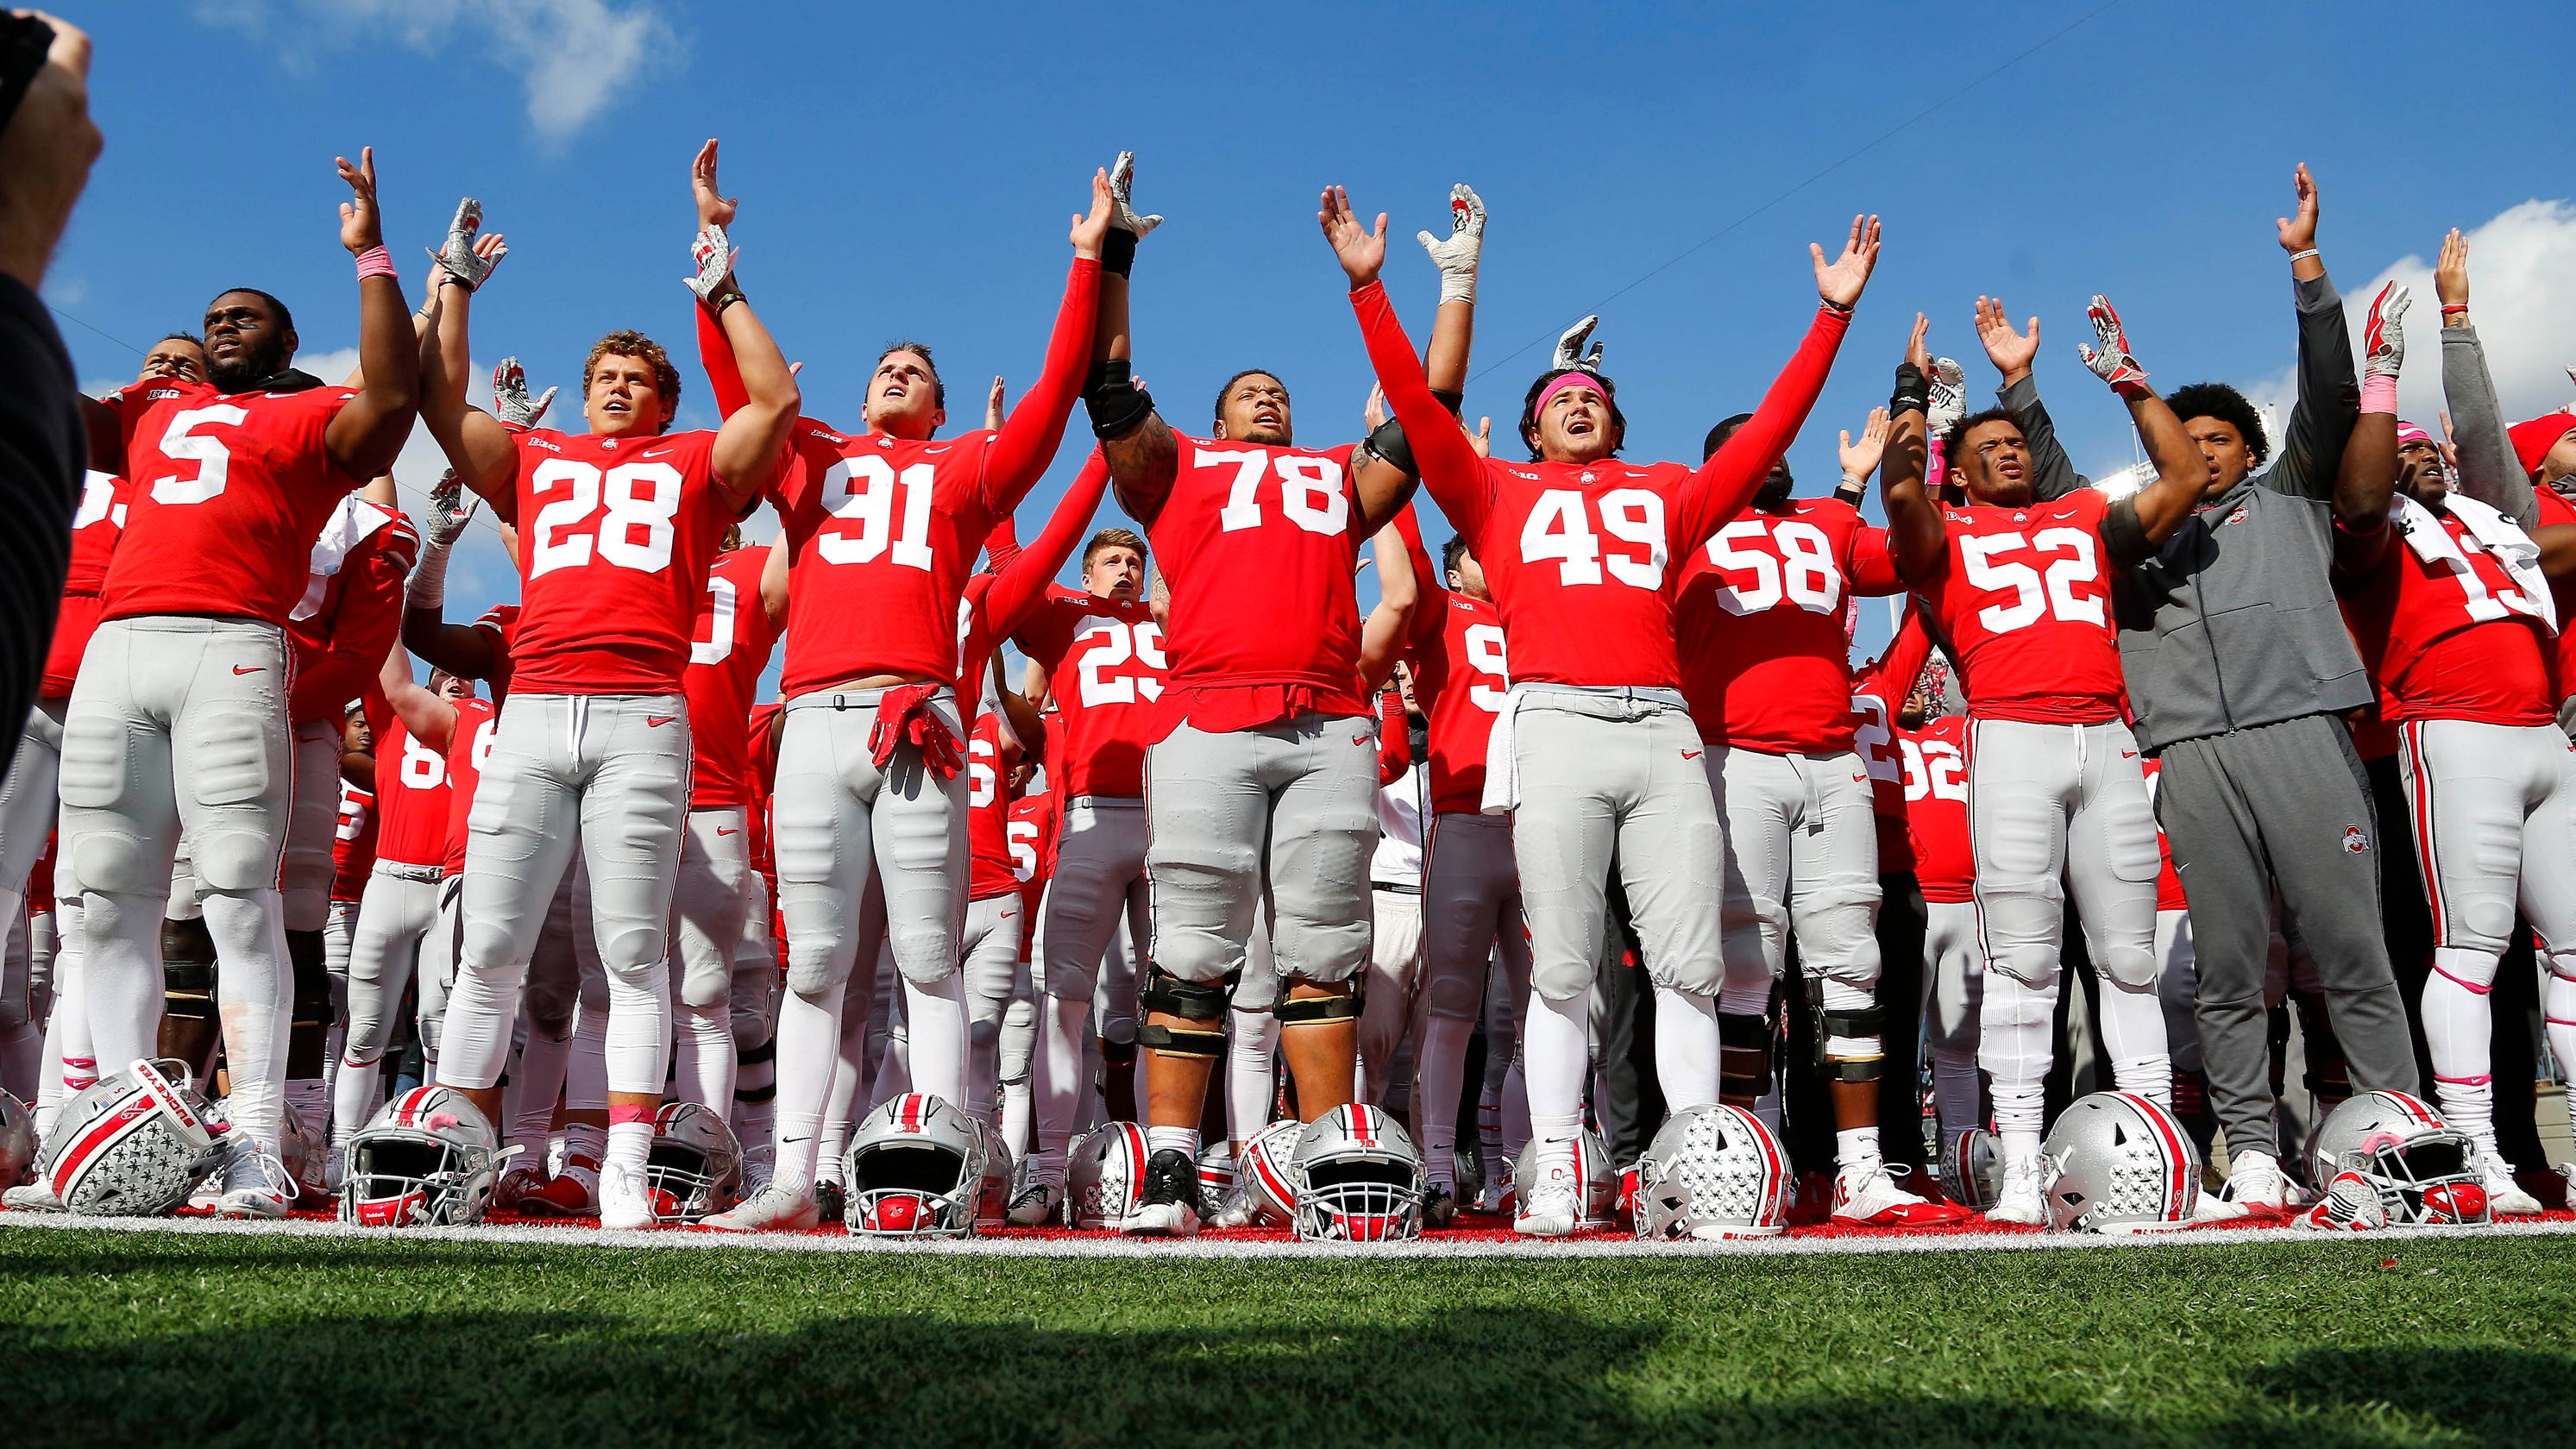 How to watch Ohio State-Purdue football: What is the game ...